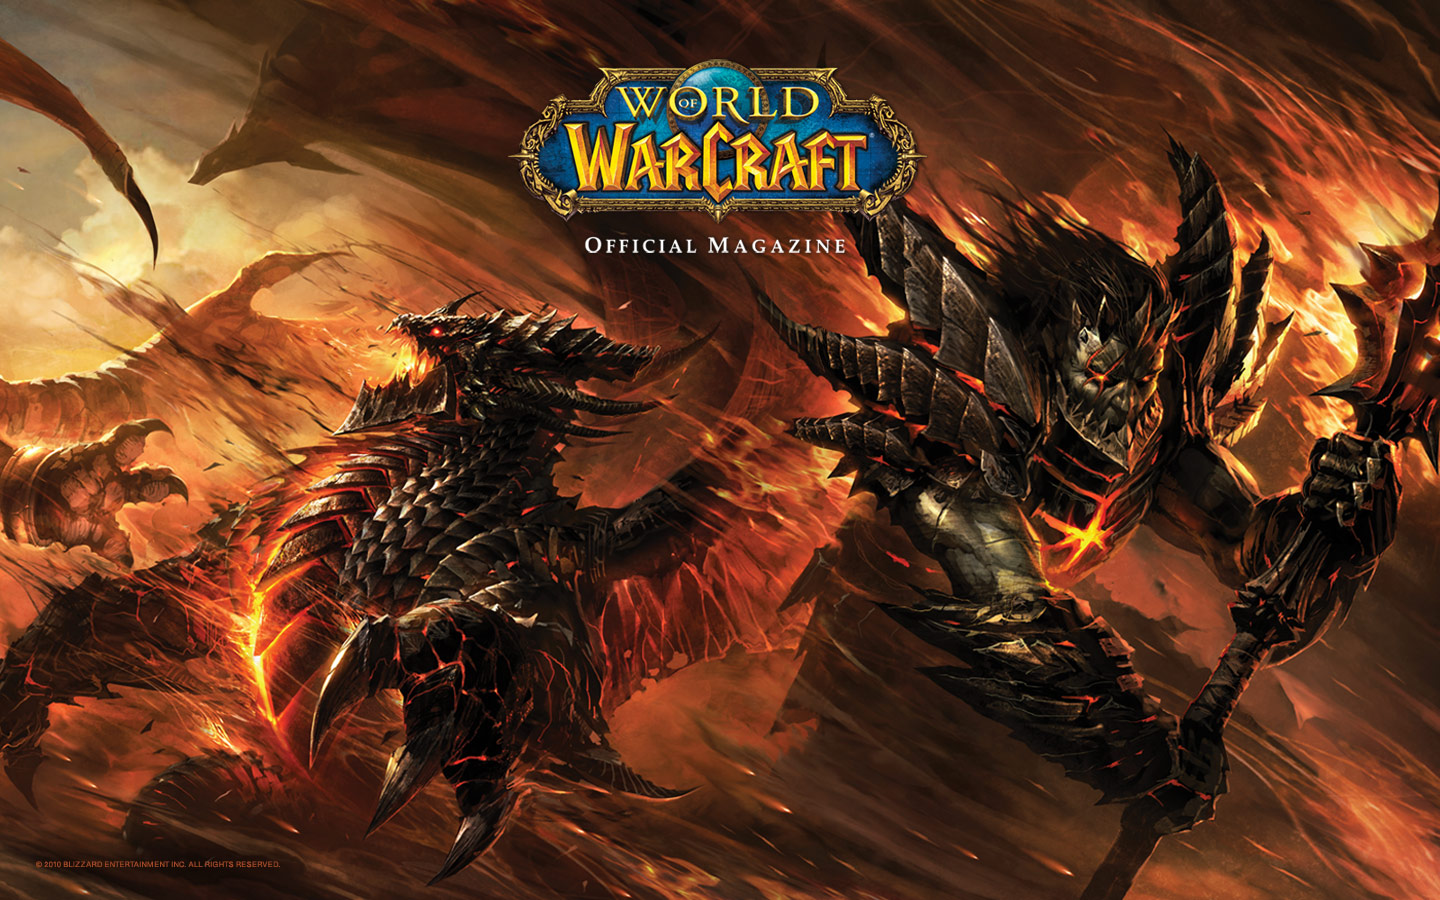 World of Warcraft - 1440x900